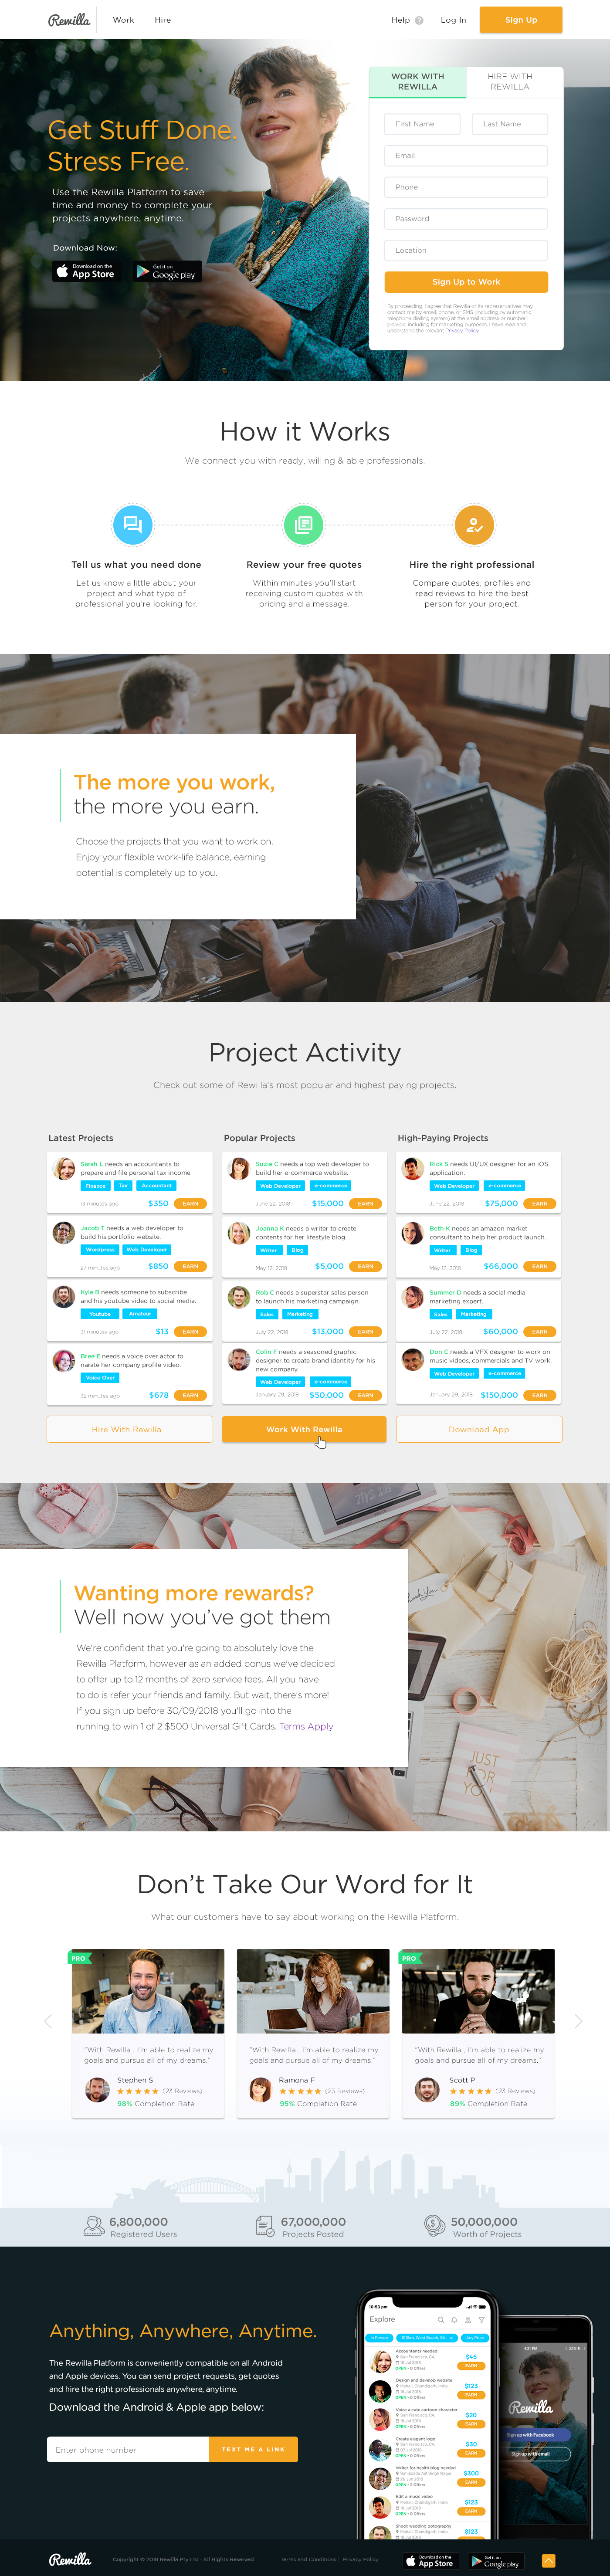 Exciting Modern Landing Page for Start Up Marketplace